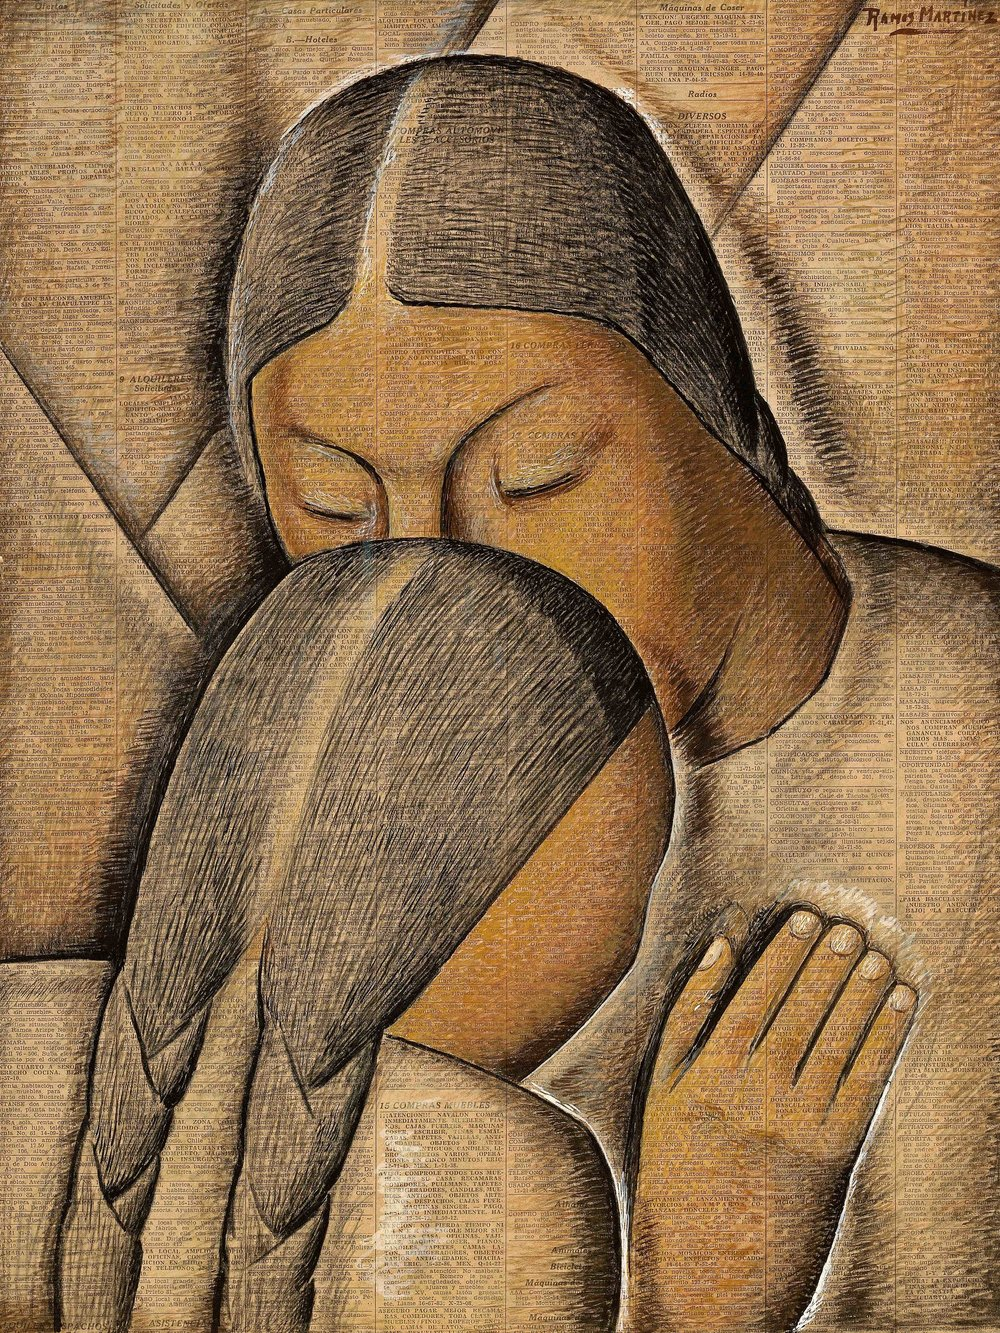 Abrazo Materno / Maternal Embrace  1942 tempera on newsprint / temple sobre papel periódico ( El Universal , November 14, 1942) 21.2 x 16 inches; 53.7 x 40.6 centímetros